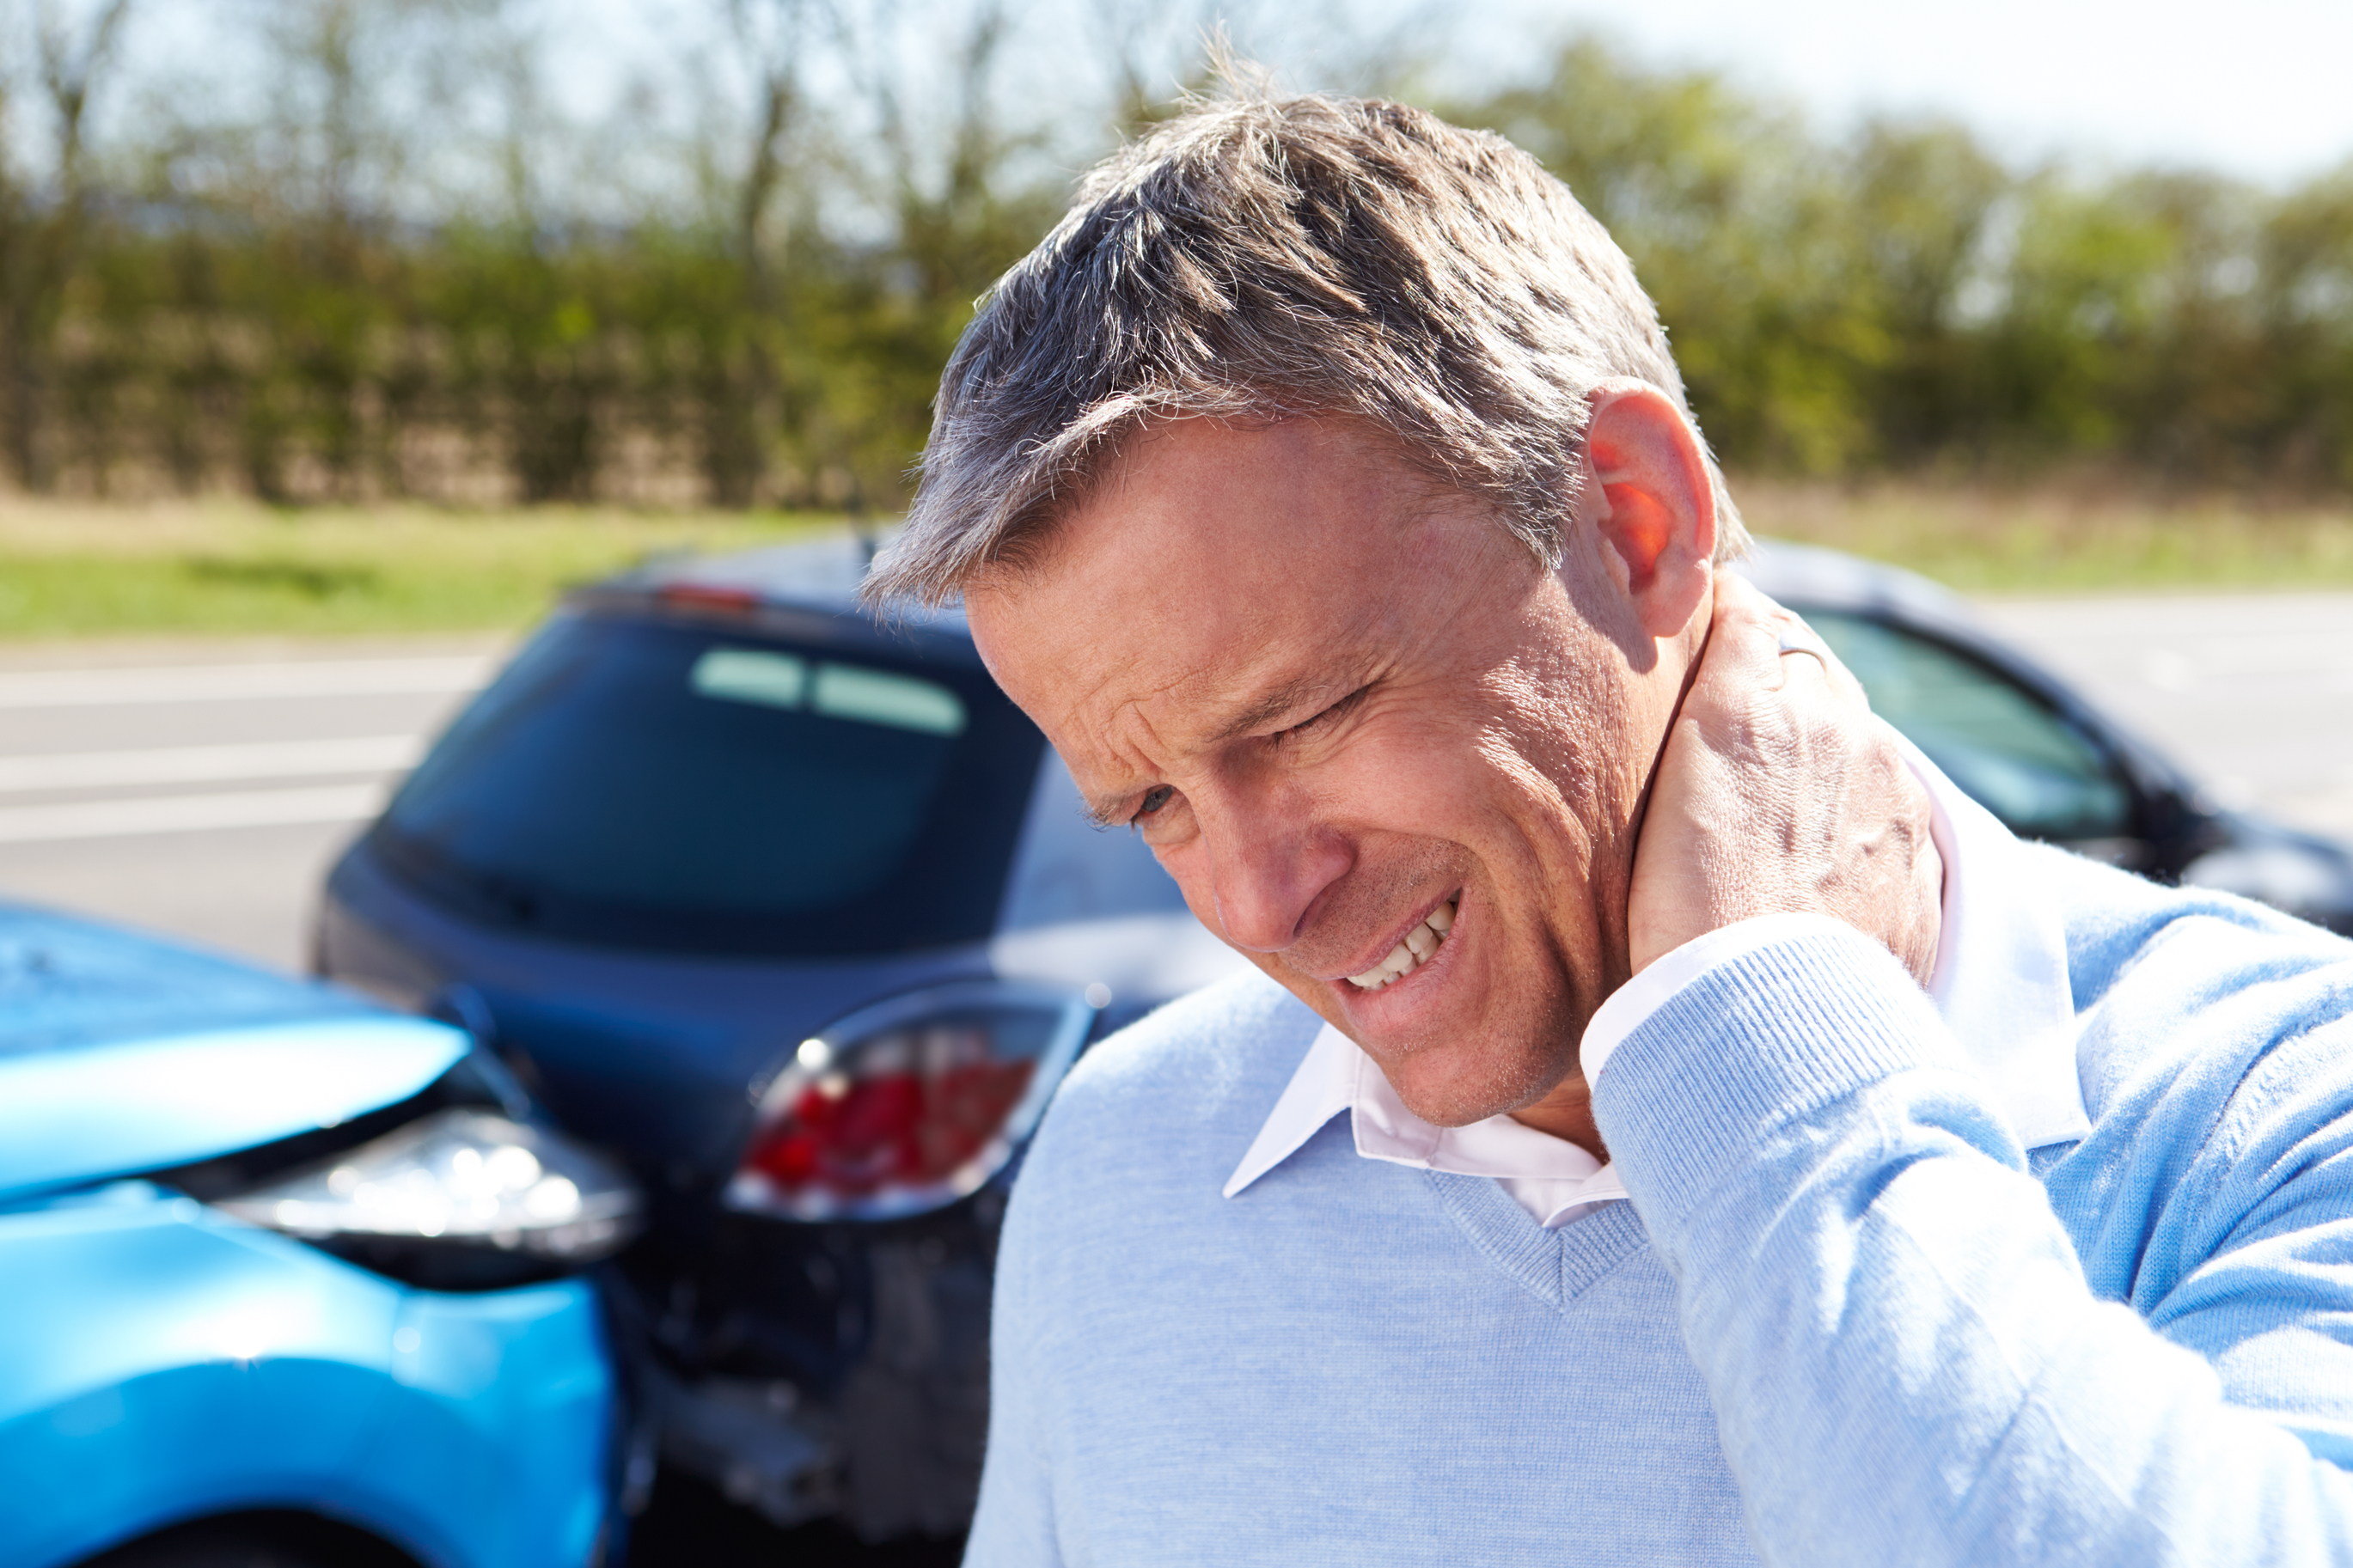 Treatment for auto accident injuries